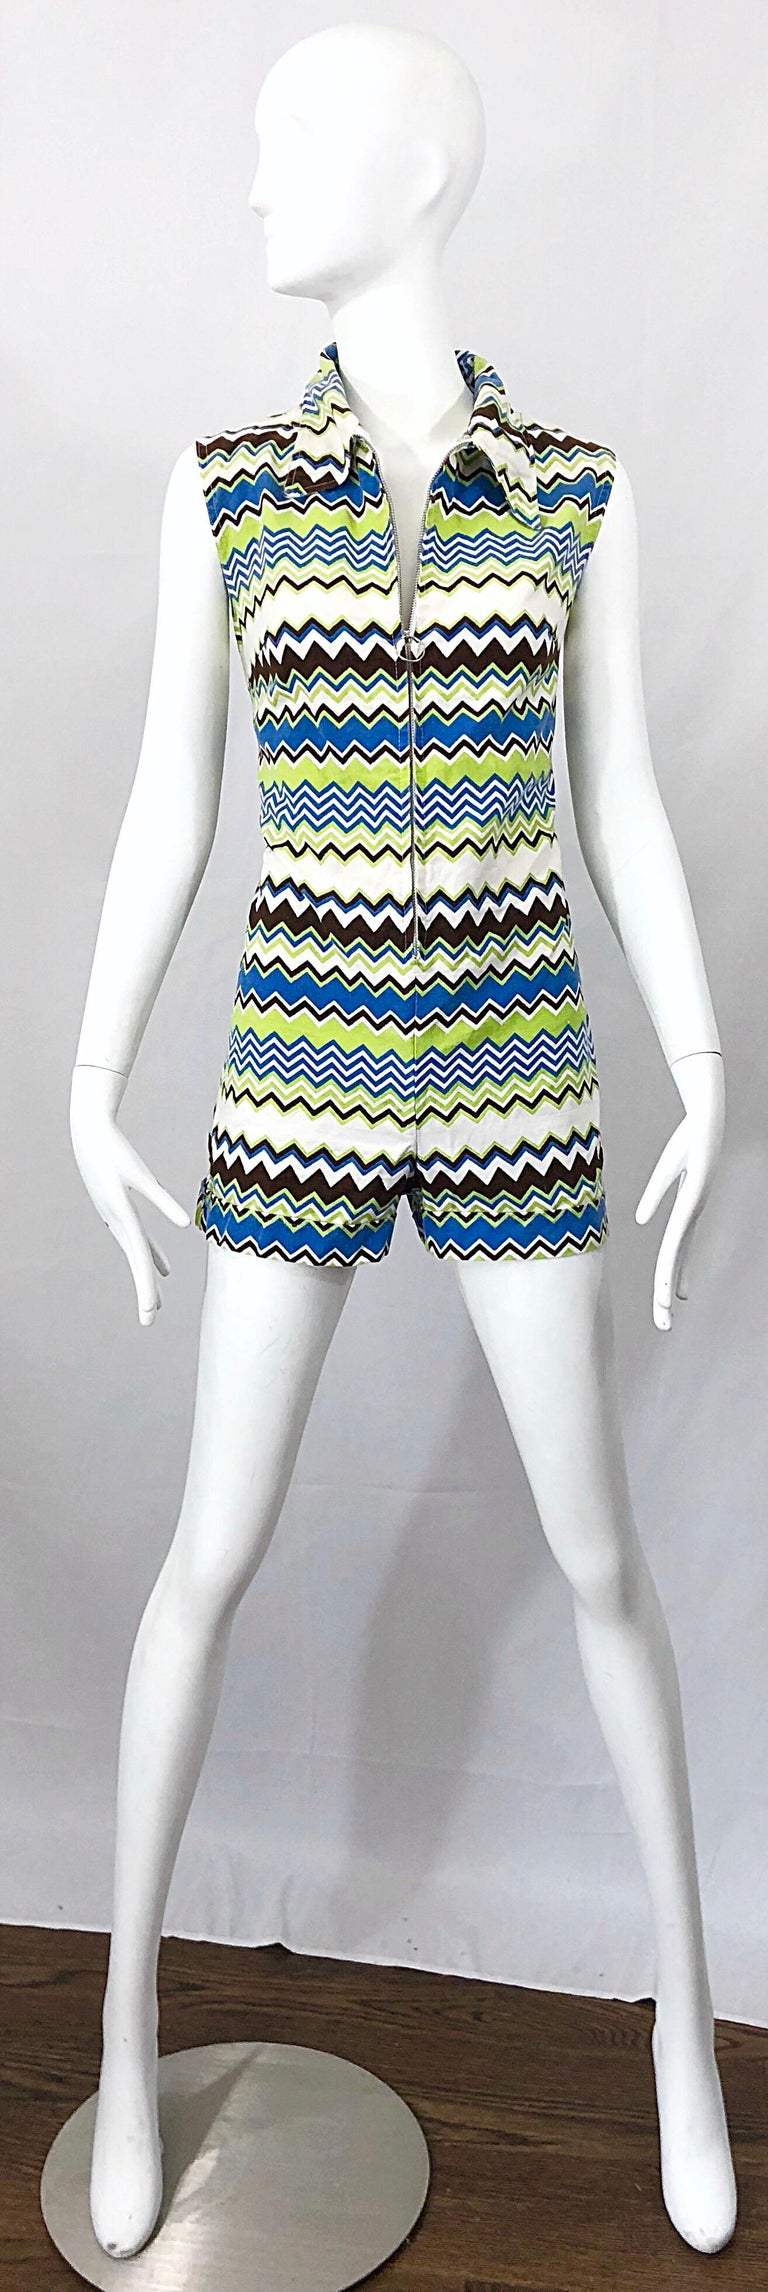 Chic early 1970s one piece romper jumpsuit! Features zig zag prints in lime green, blue, brown and white throughout. Full metal zipper up the front controls cleavage exposure. Nice sturdy cotton fabric keeps shape nicely. Great belted or alone with